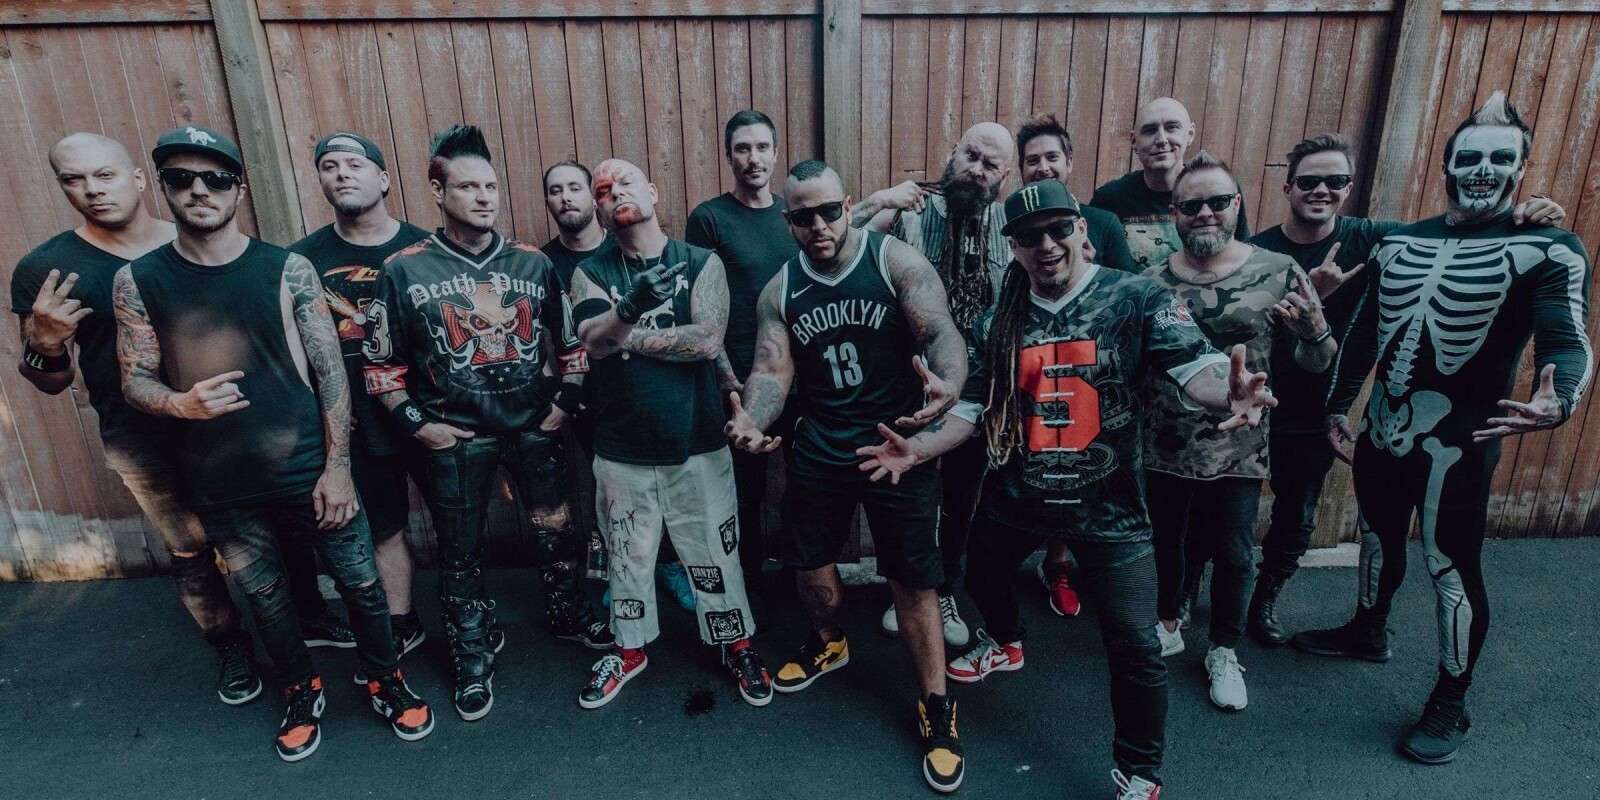 Group photo with bad wolves, five finger death punch and breaking benjamin. Photo credits  IG:  http://instagram.com/randyedwardsphotos FB:  https://www.facebook.com/RandyEdwardsPhotos/ Twitter:  http://twitter.com/randy_superior